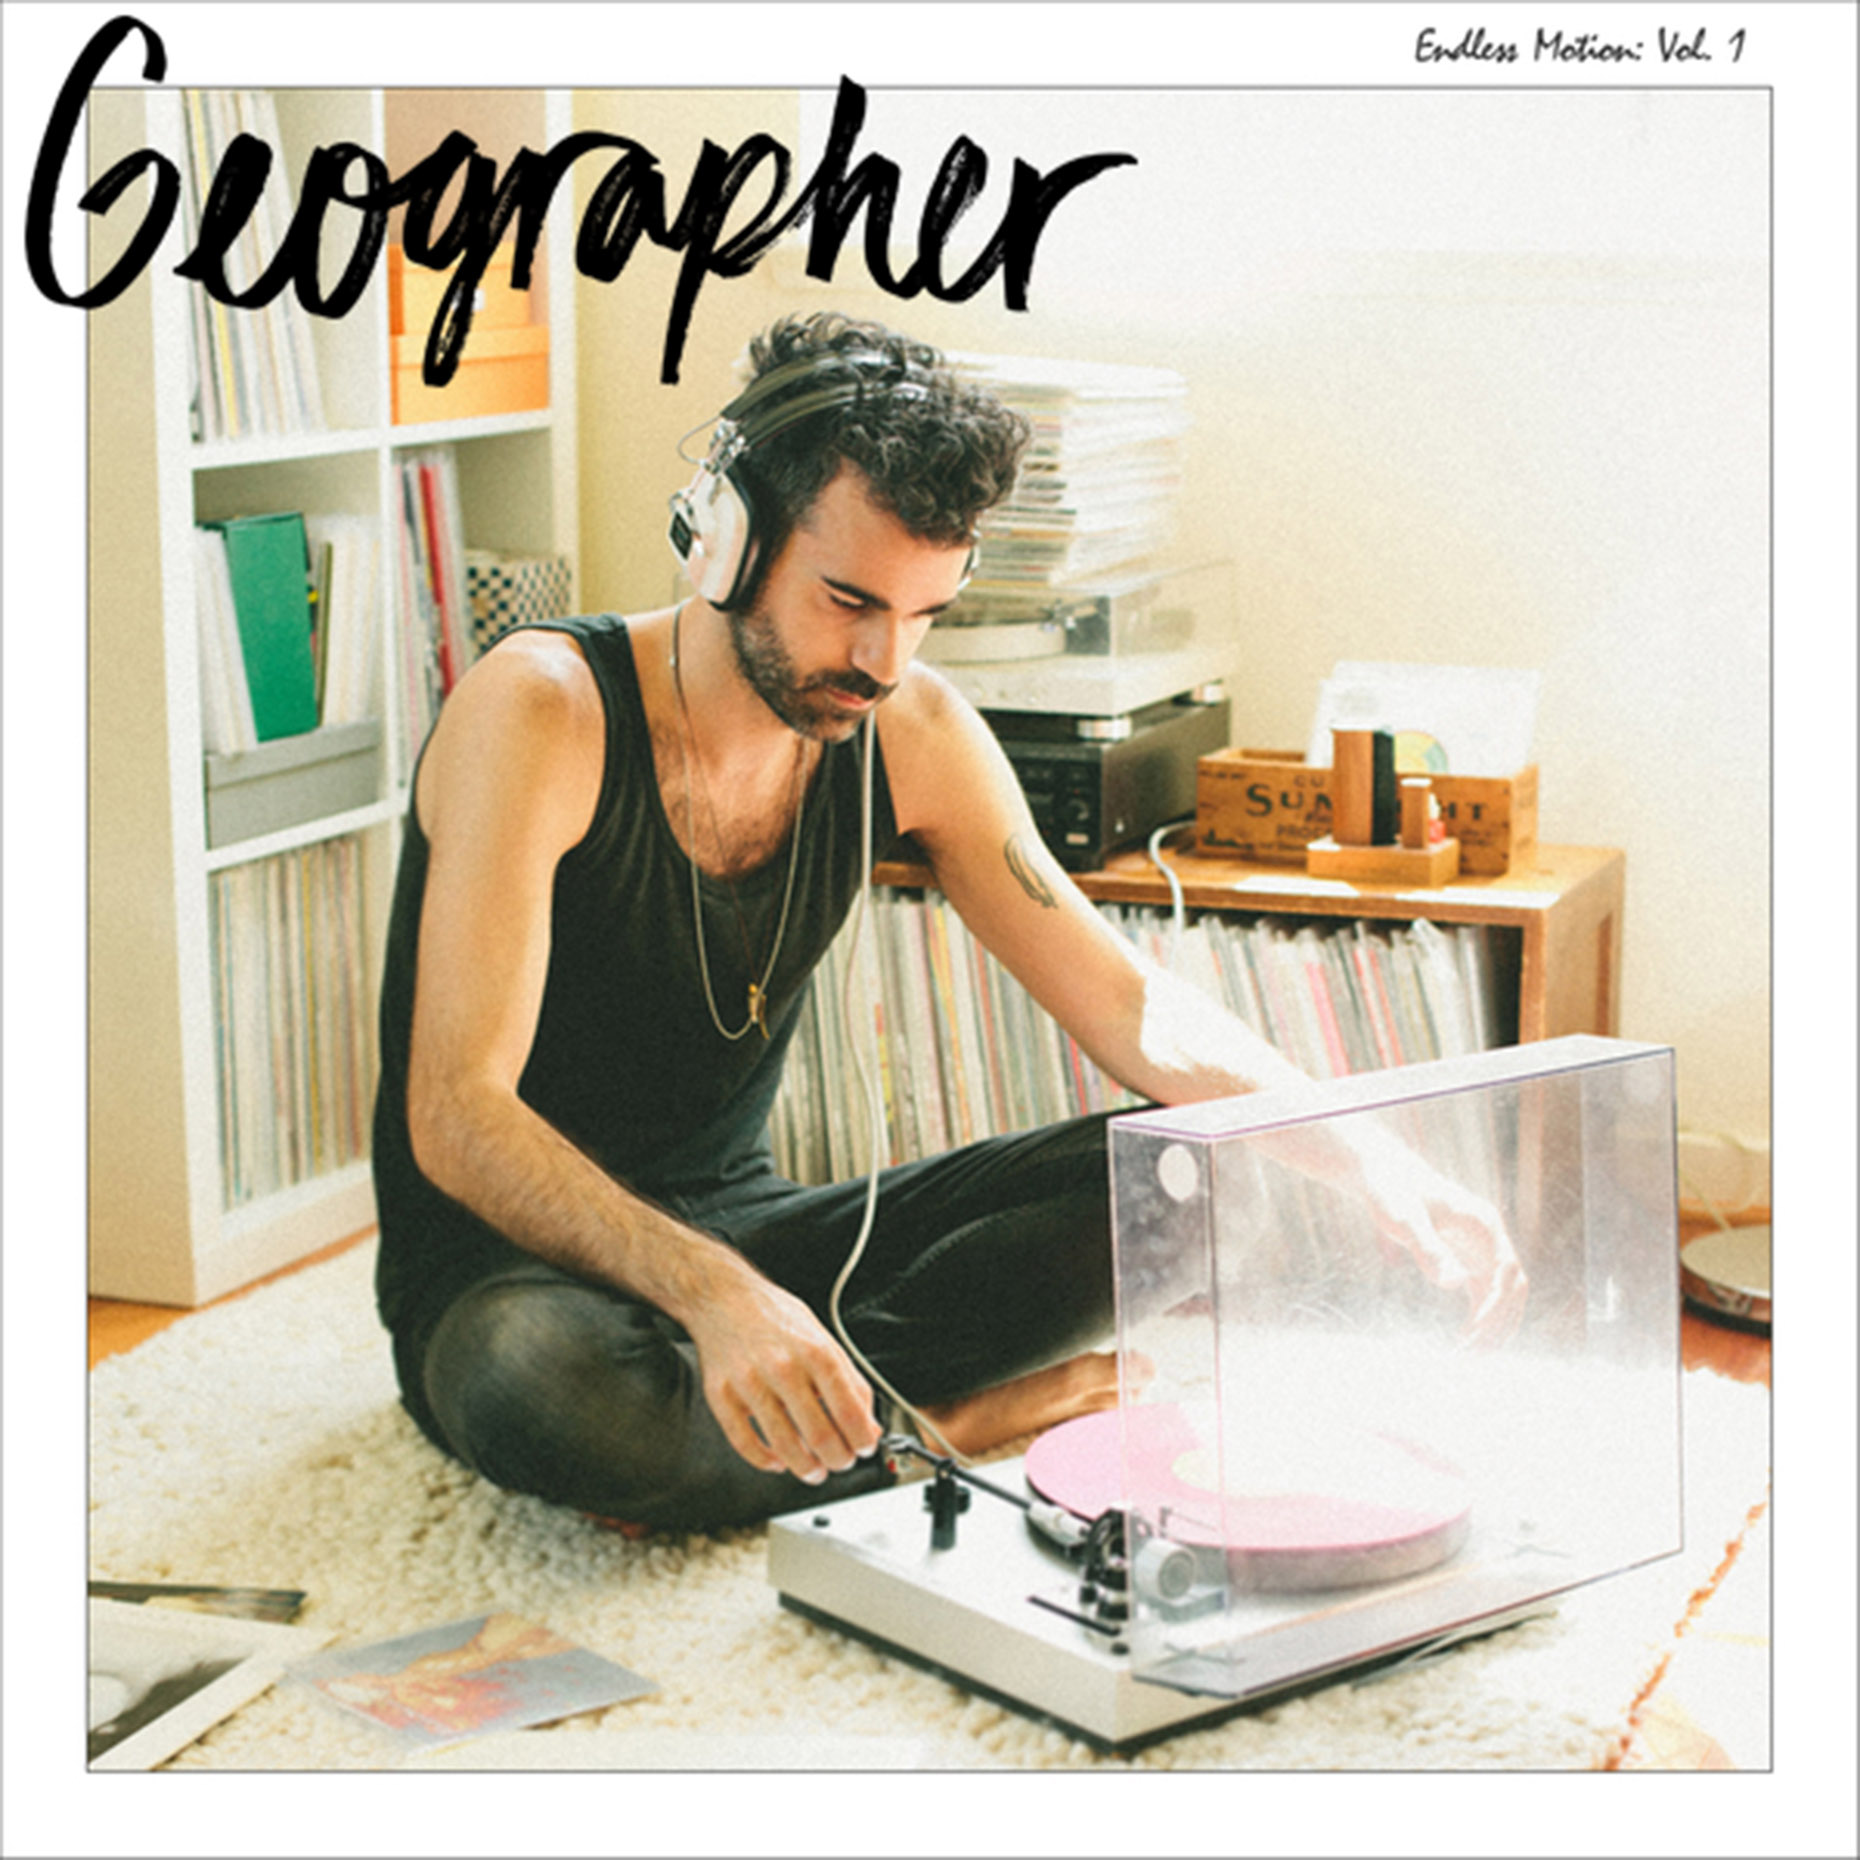 emilysevinphoto geographer album cover